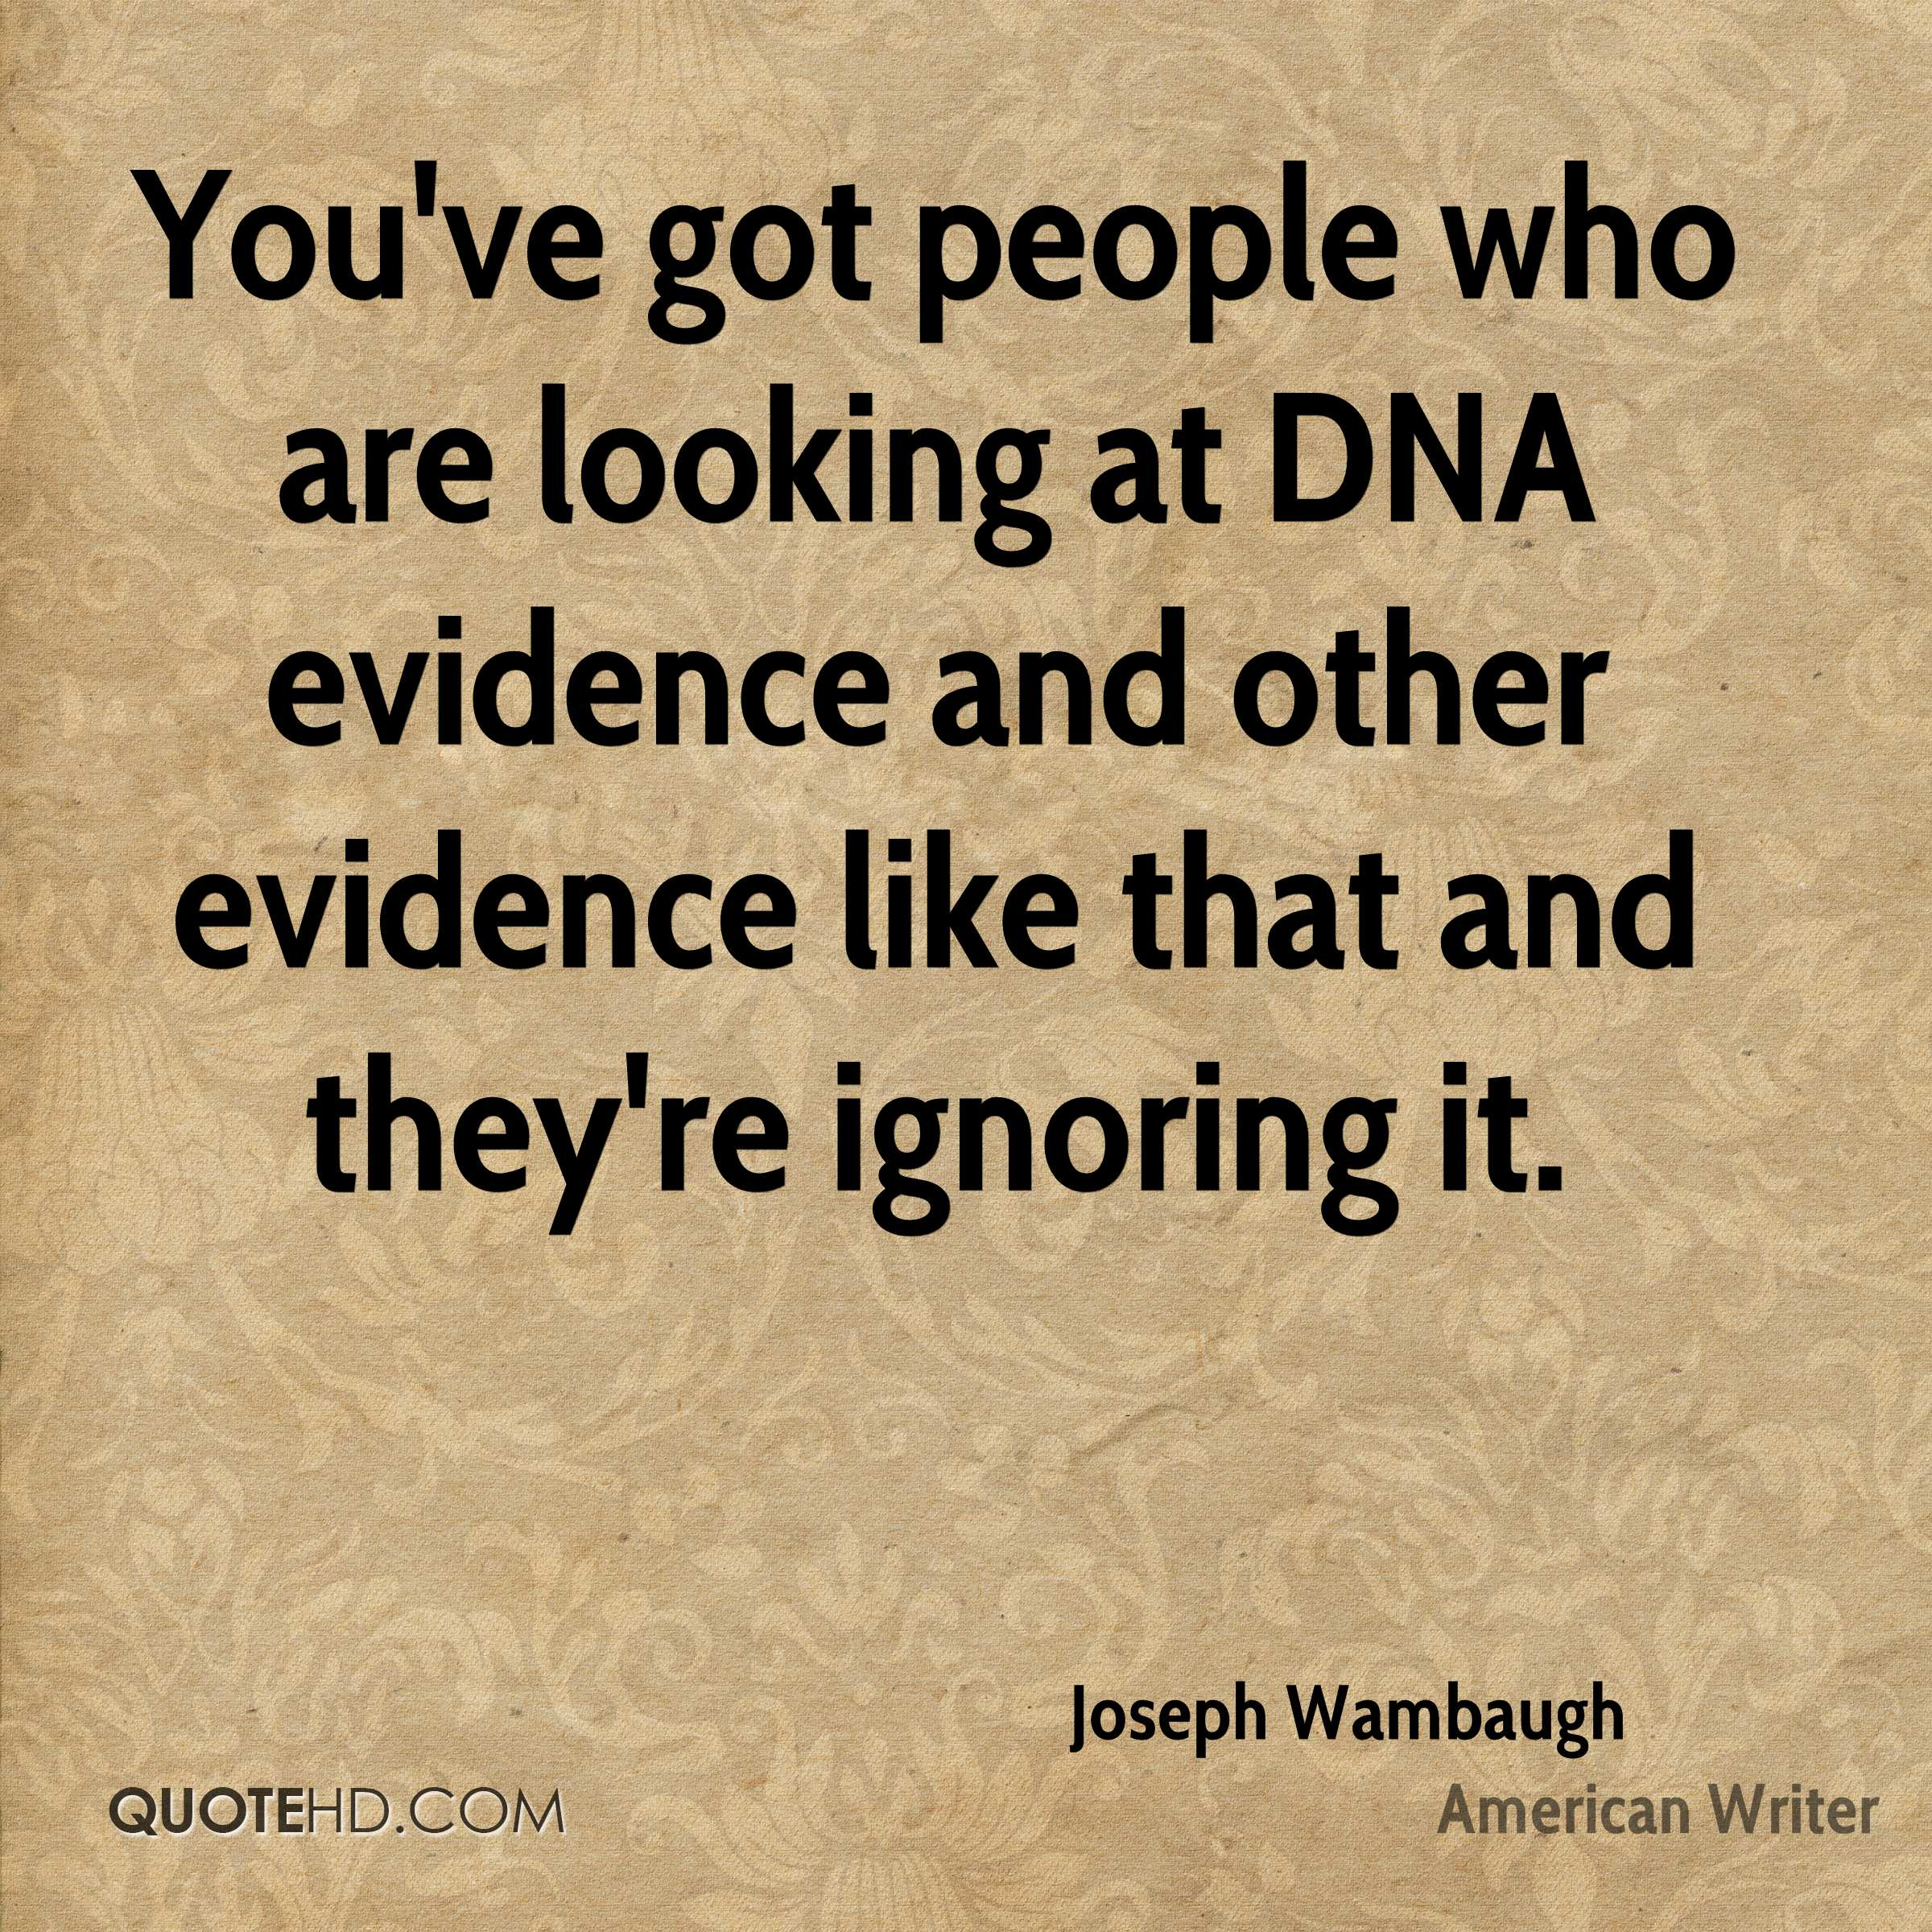 You've got people who are looking at DNA evidence and other evidence like that and they're ignoring it.